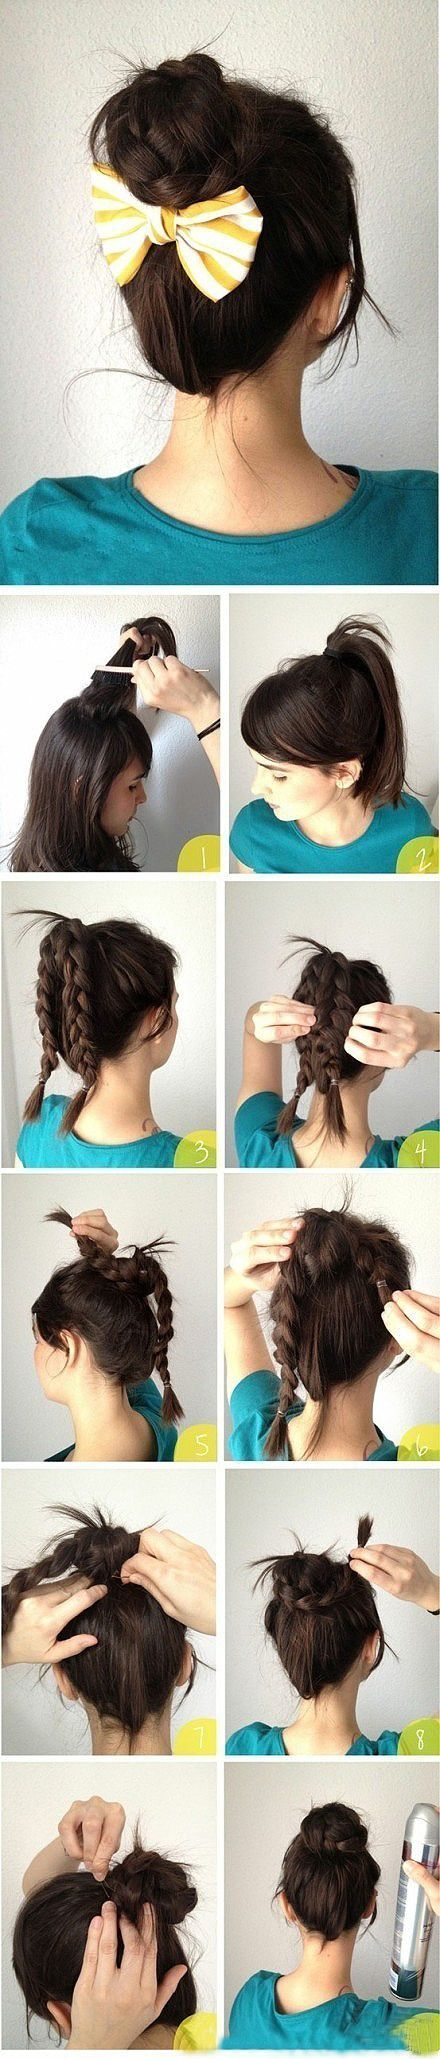 DIY Quick Bun Pictures, Photos, and Images for Facebook, Tumblr, Pinterest, and Twitter